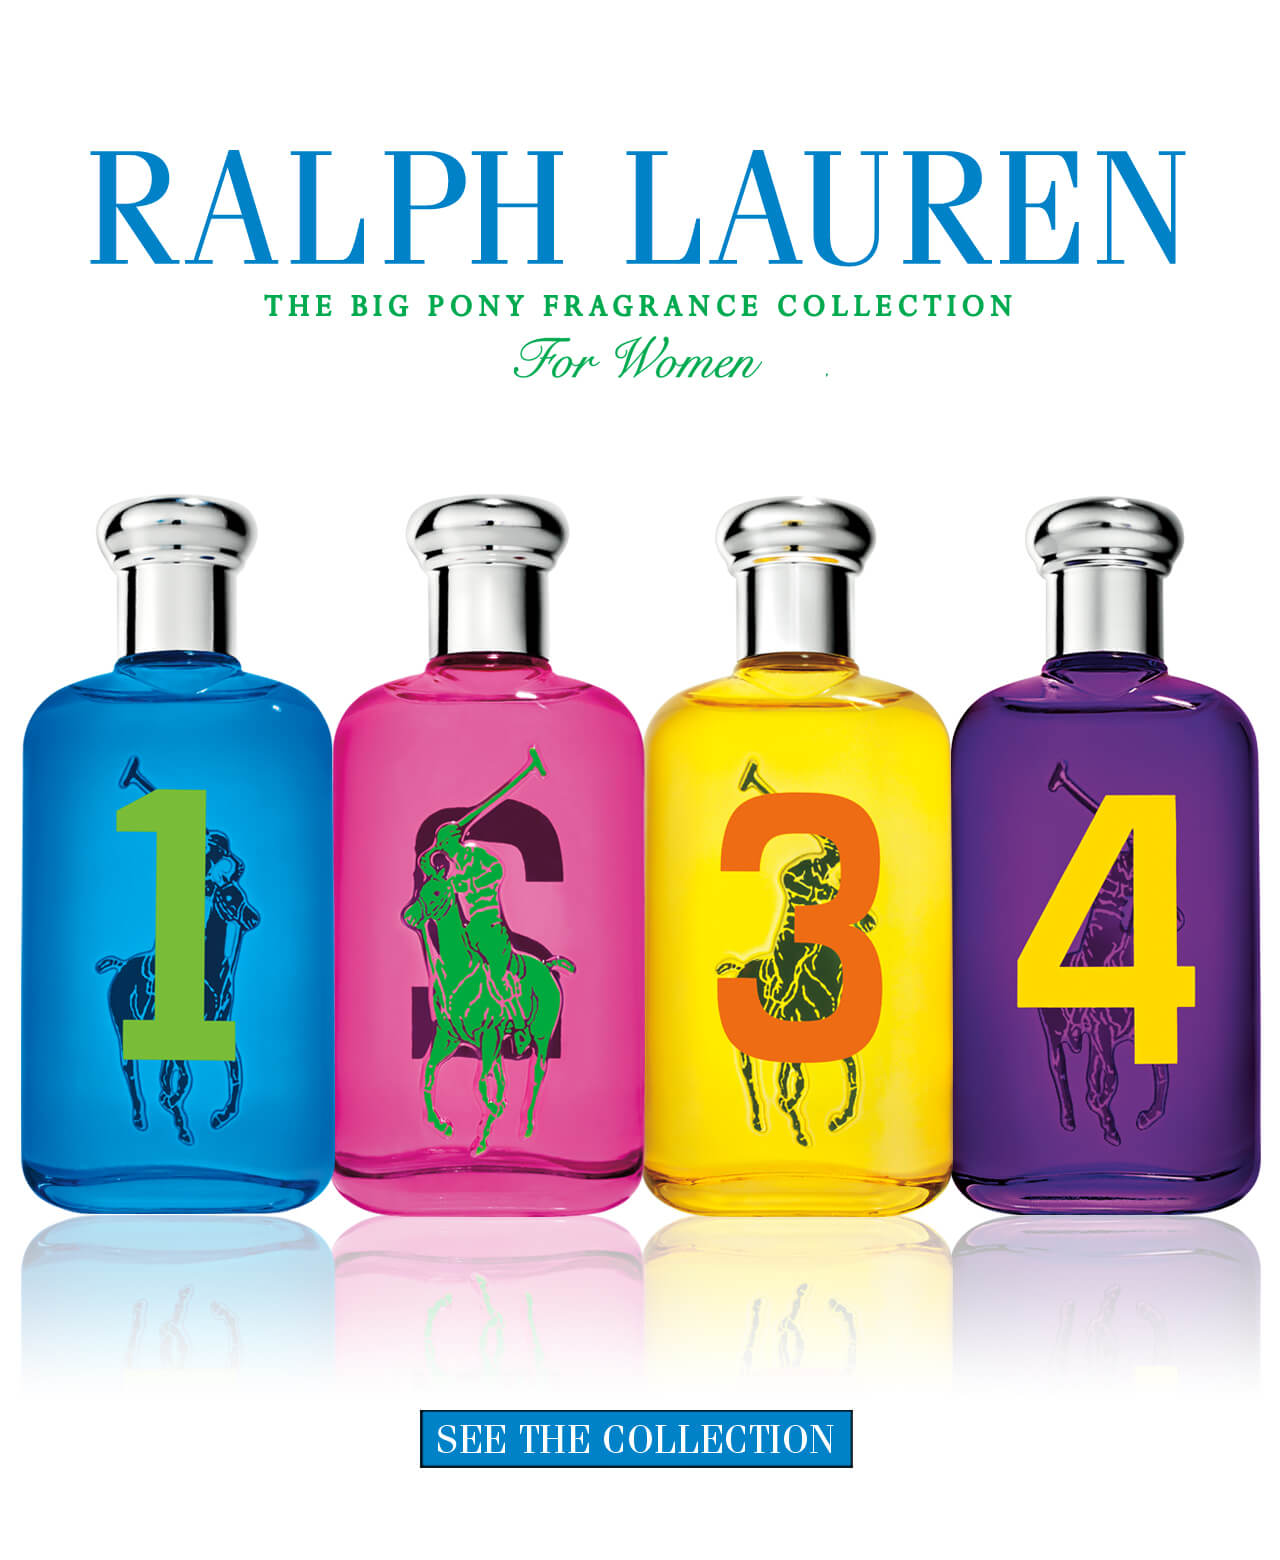 The Big Pony Fragrance Collection For Women